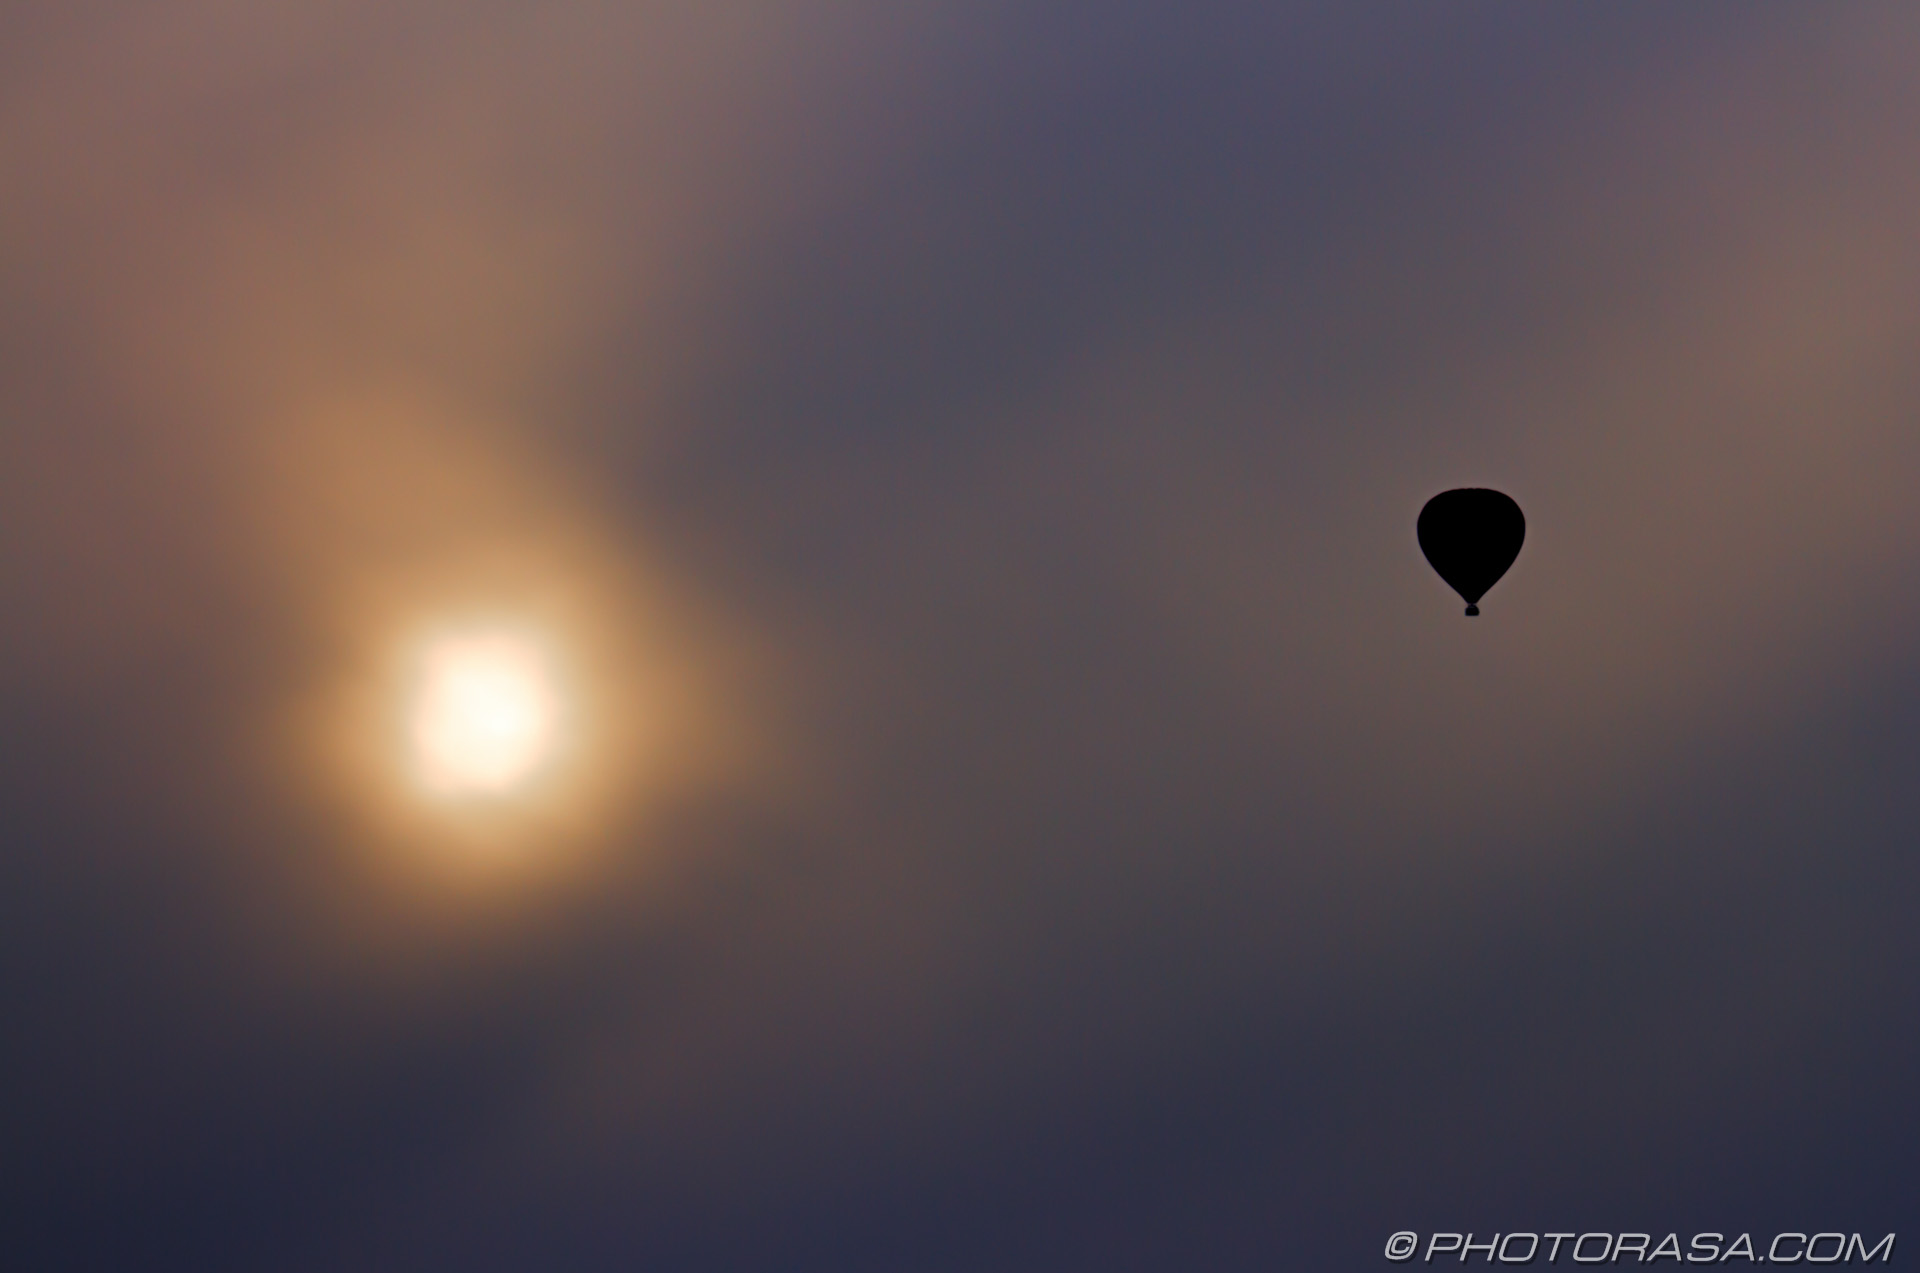 http://photorasa.com/balloons-evening-sky/hot-air-balloon-silhouette-and-sun/